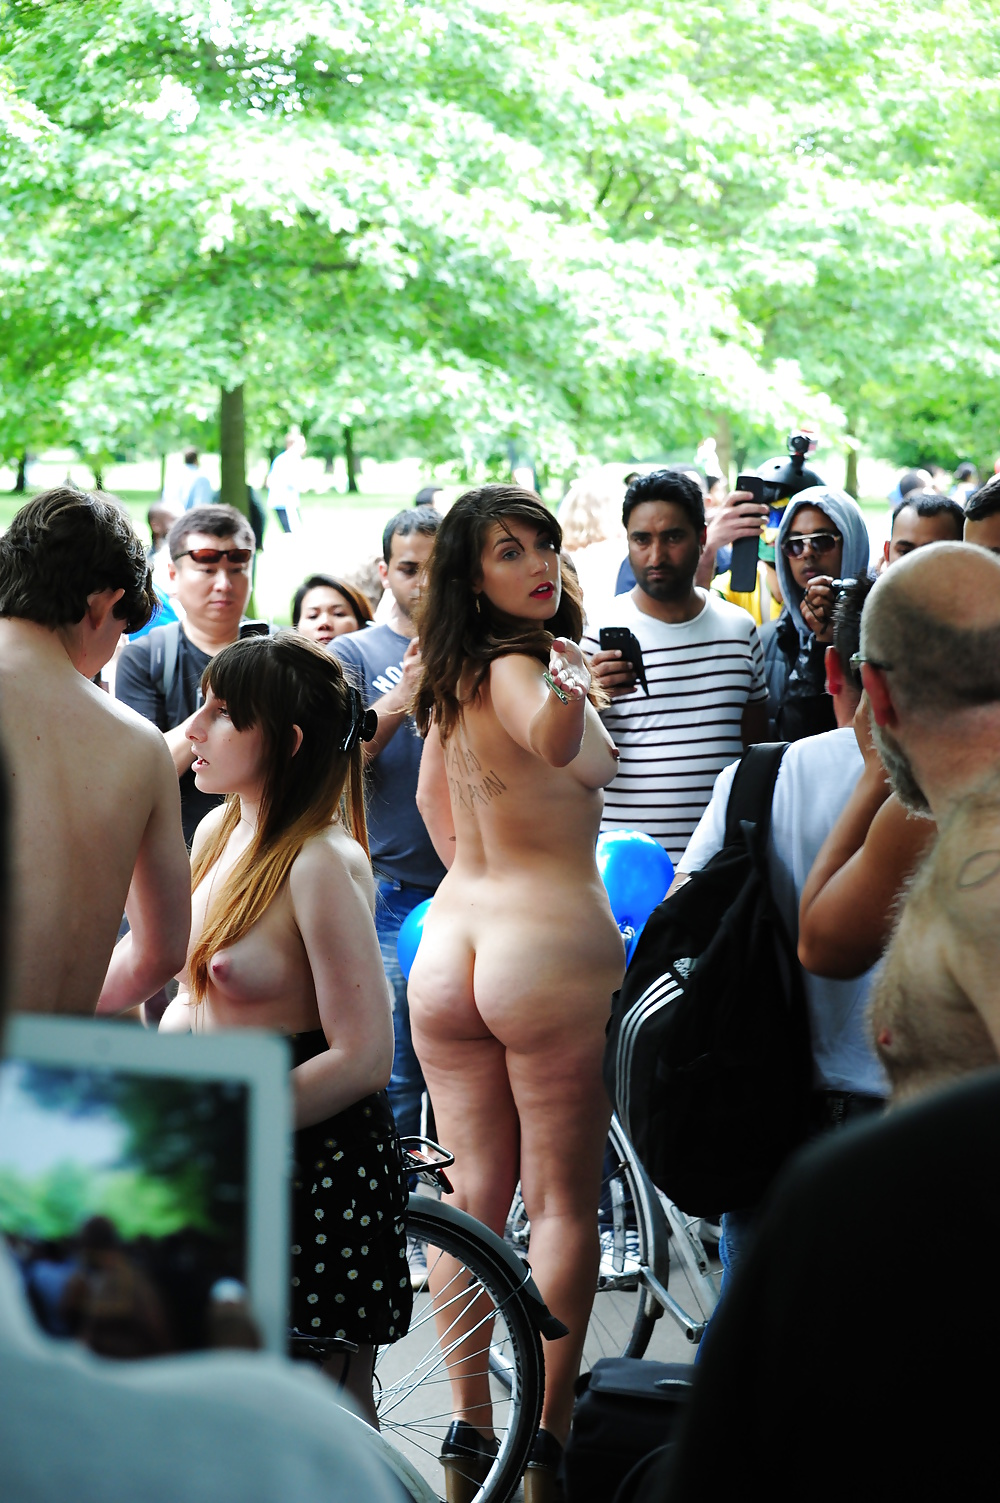 London nude pornographic images, rider naked